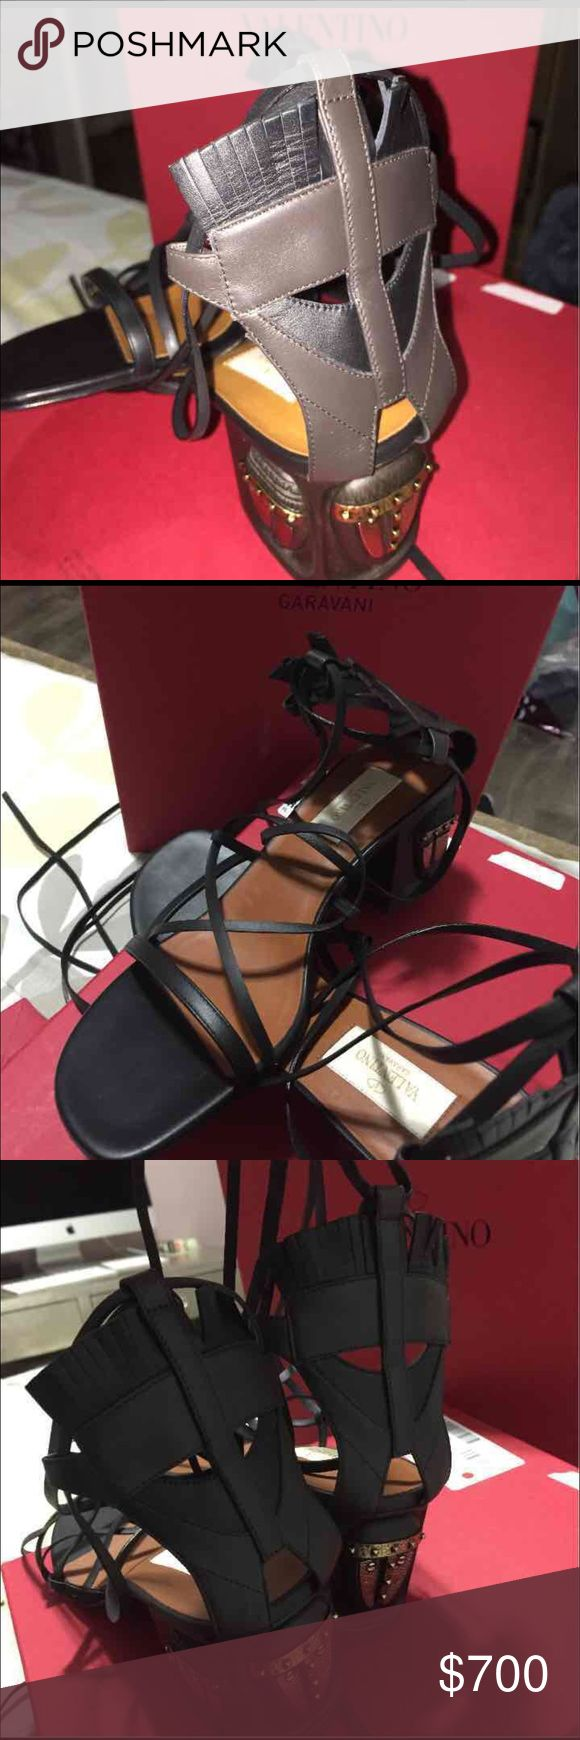 Valentino wedges Brand new limited edition Valentino wedges Valentino Shoes Wedges